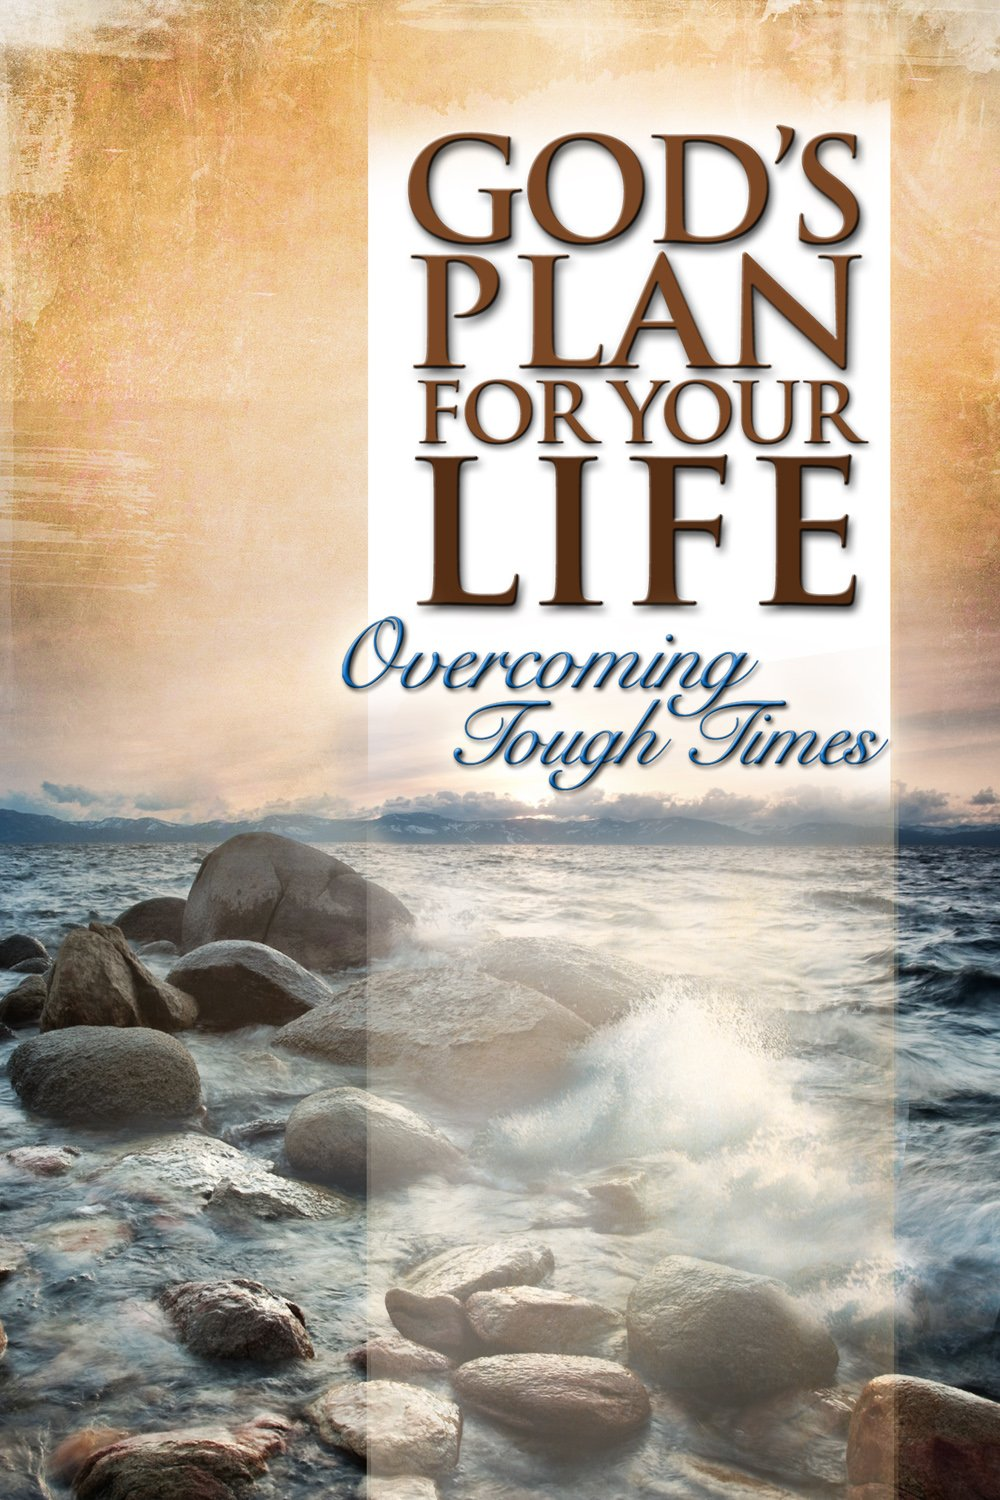 God's Plan for Your Life: Overcoming Tough Times